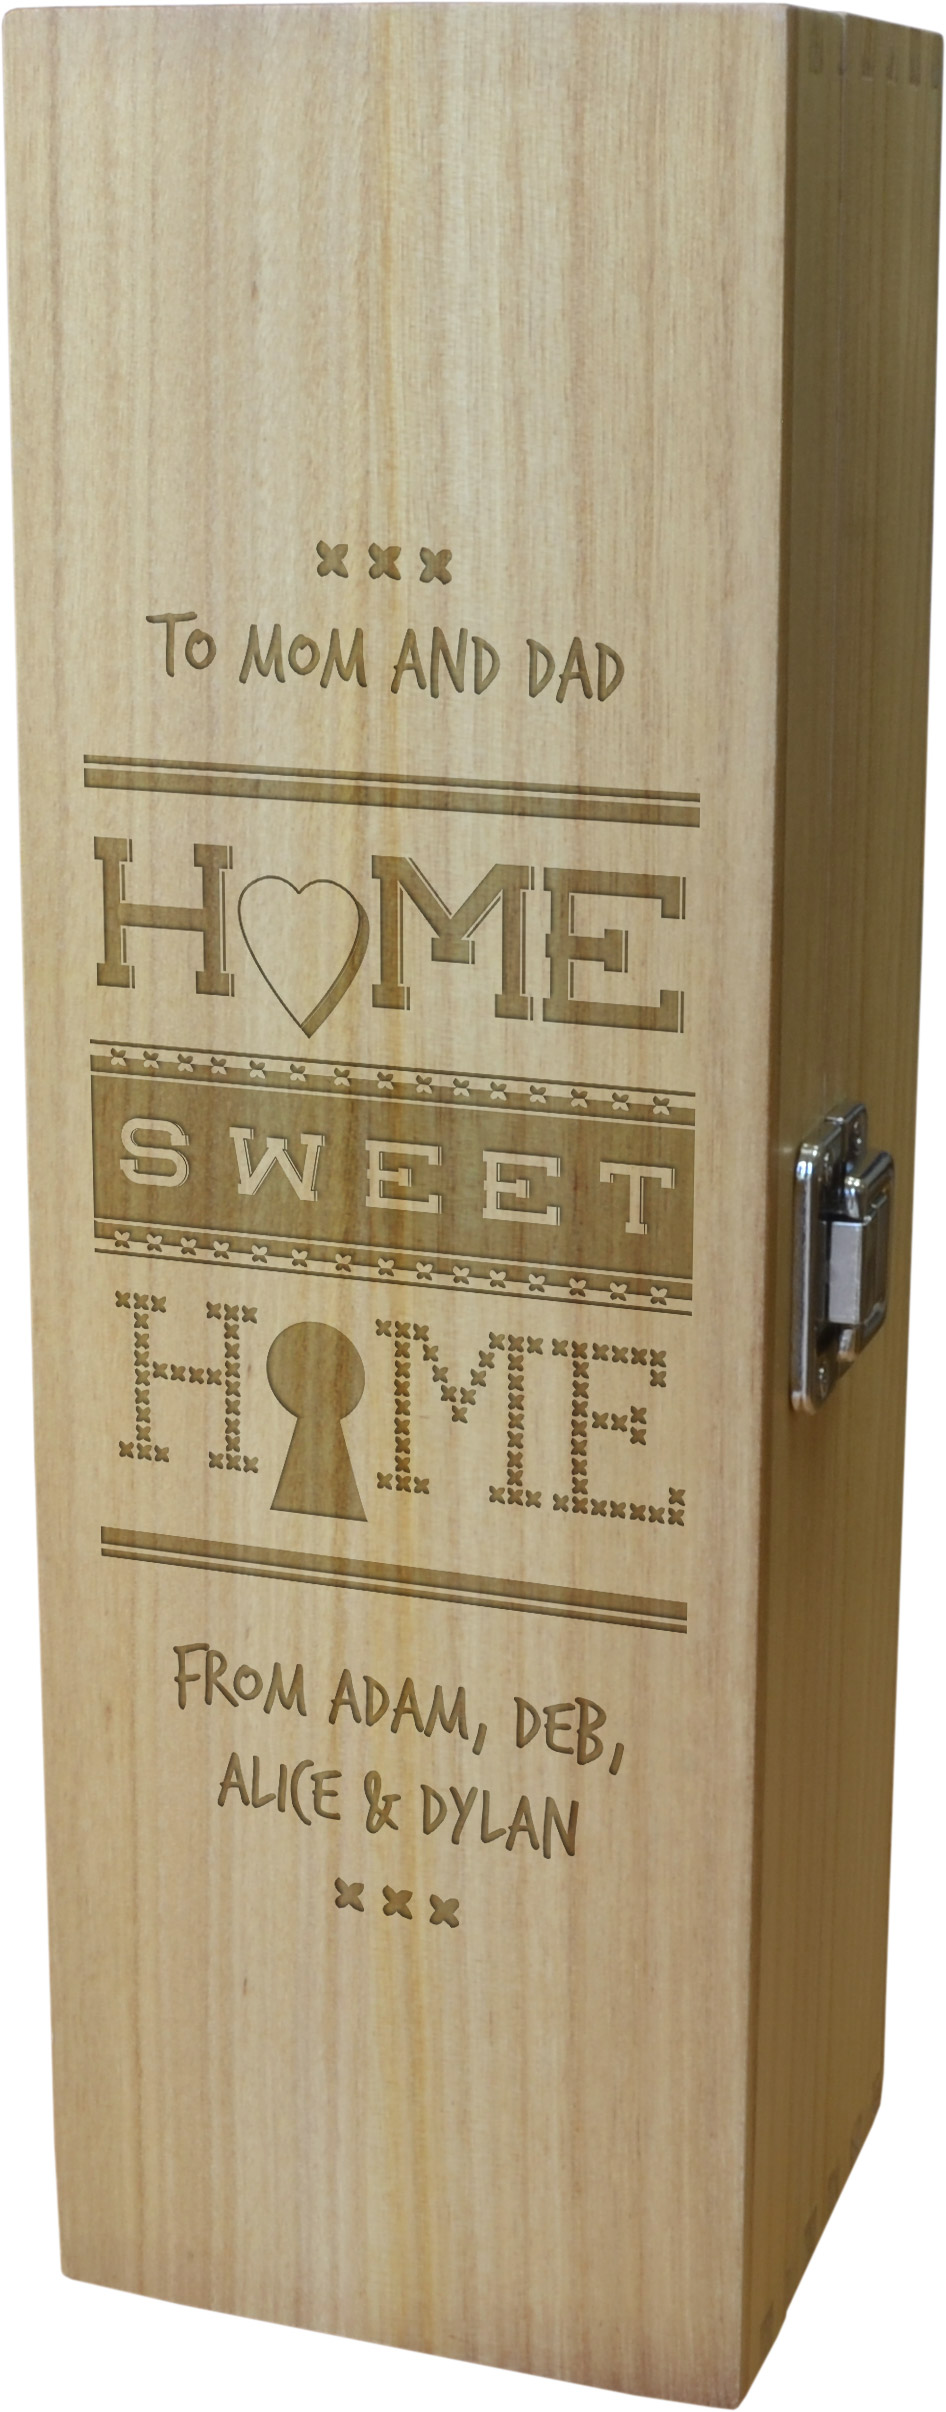 "Home Sweet Home Personalised Wine Box 35cm (13.75"")"